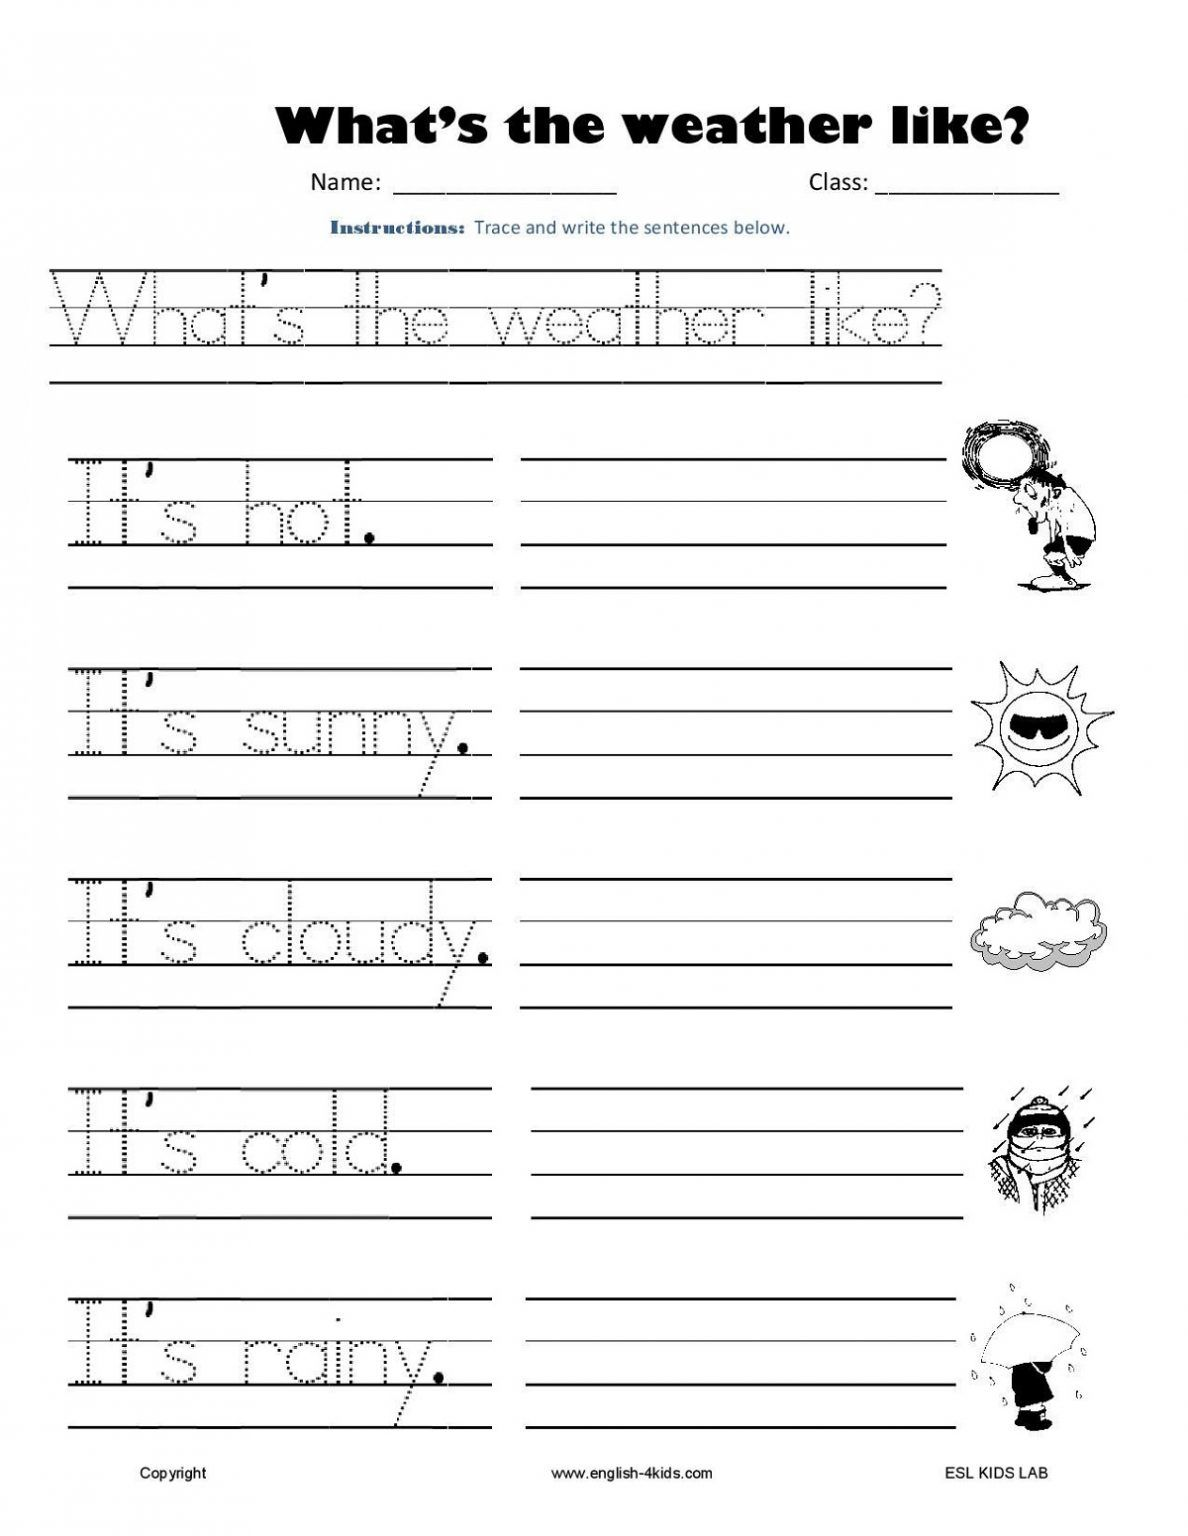 Free Printable Learning Worksheets For Kids